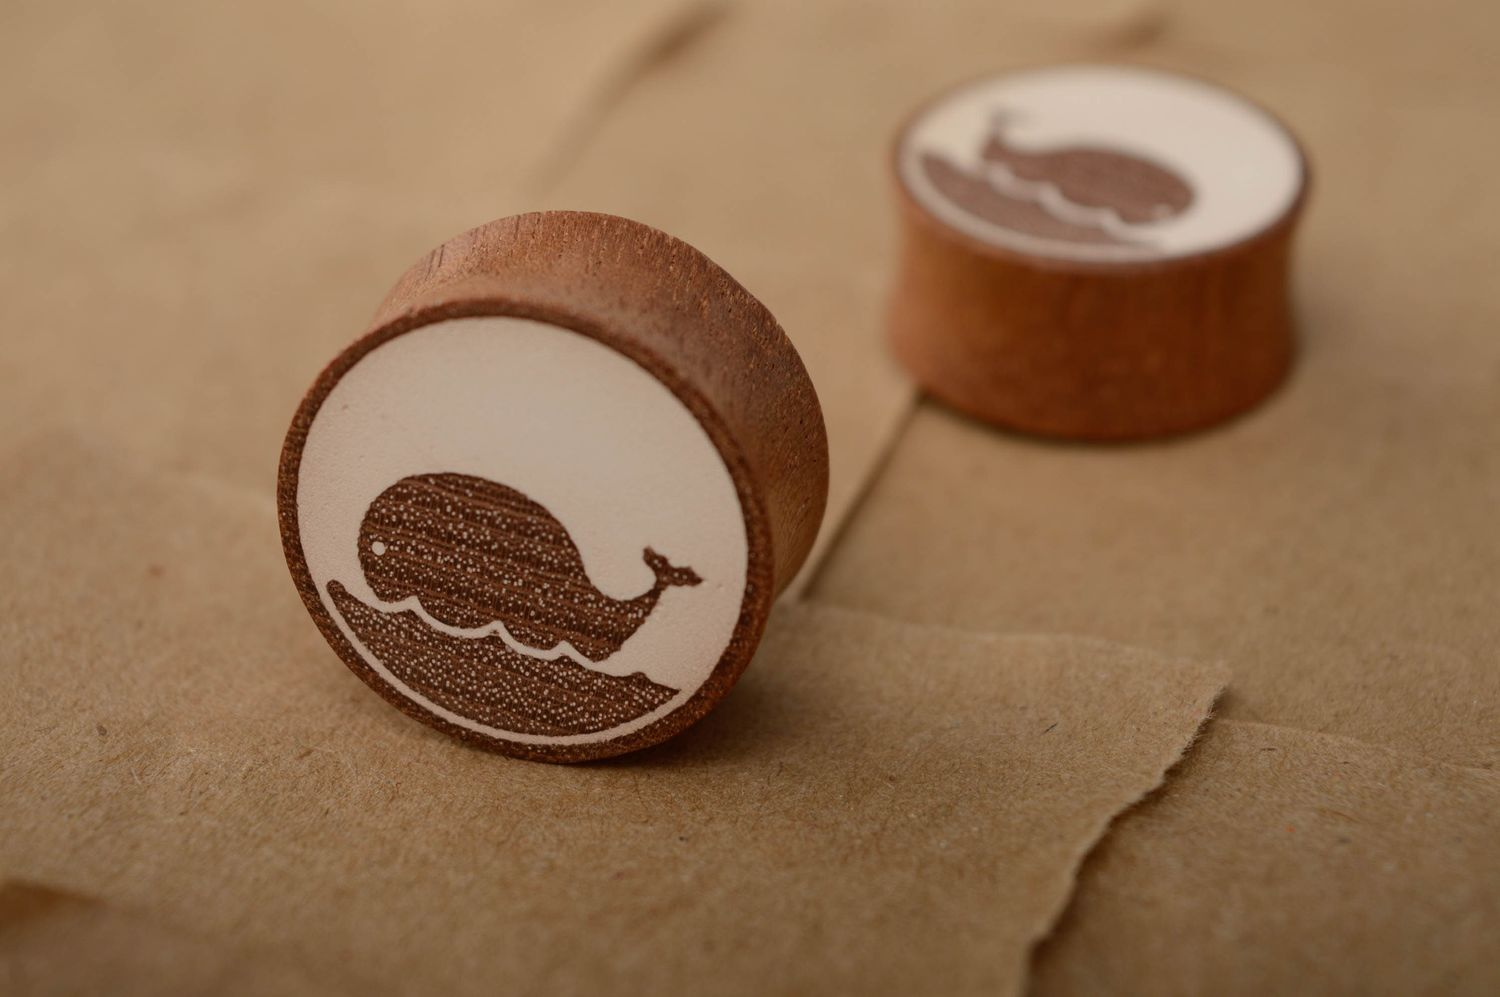 Ear stretching plugs Sapele wood ear plugs with image of whales - MADEheart.com